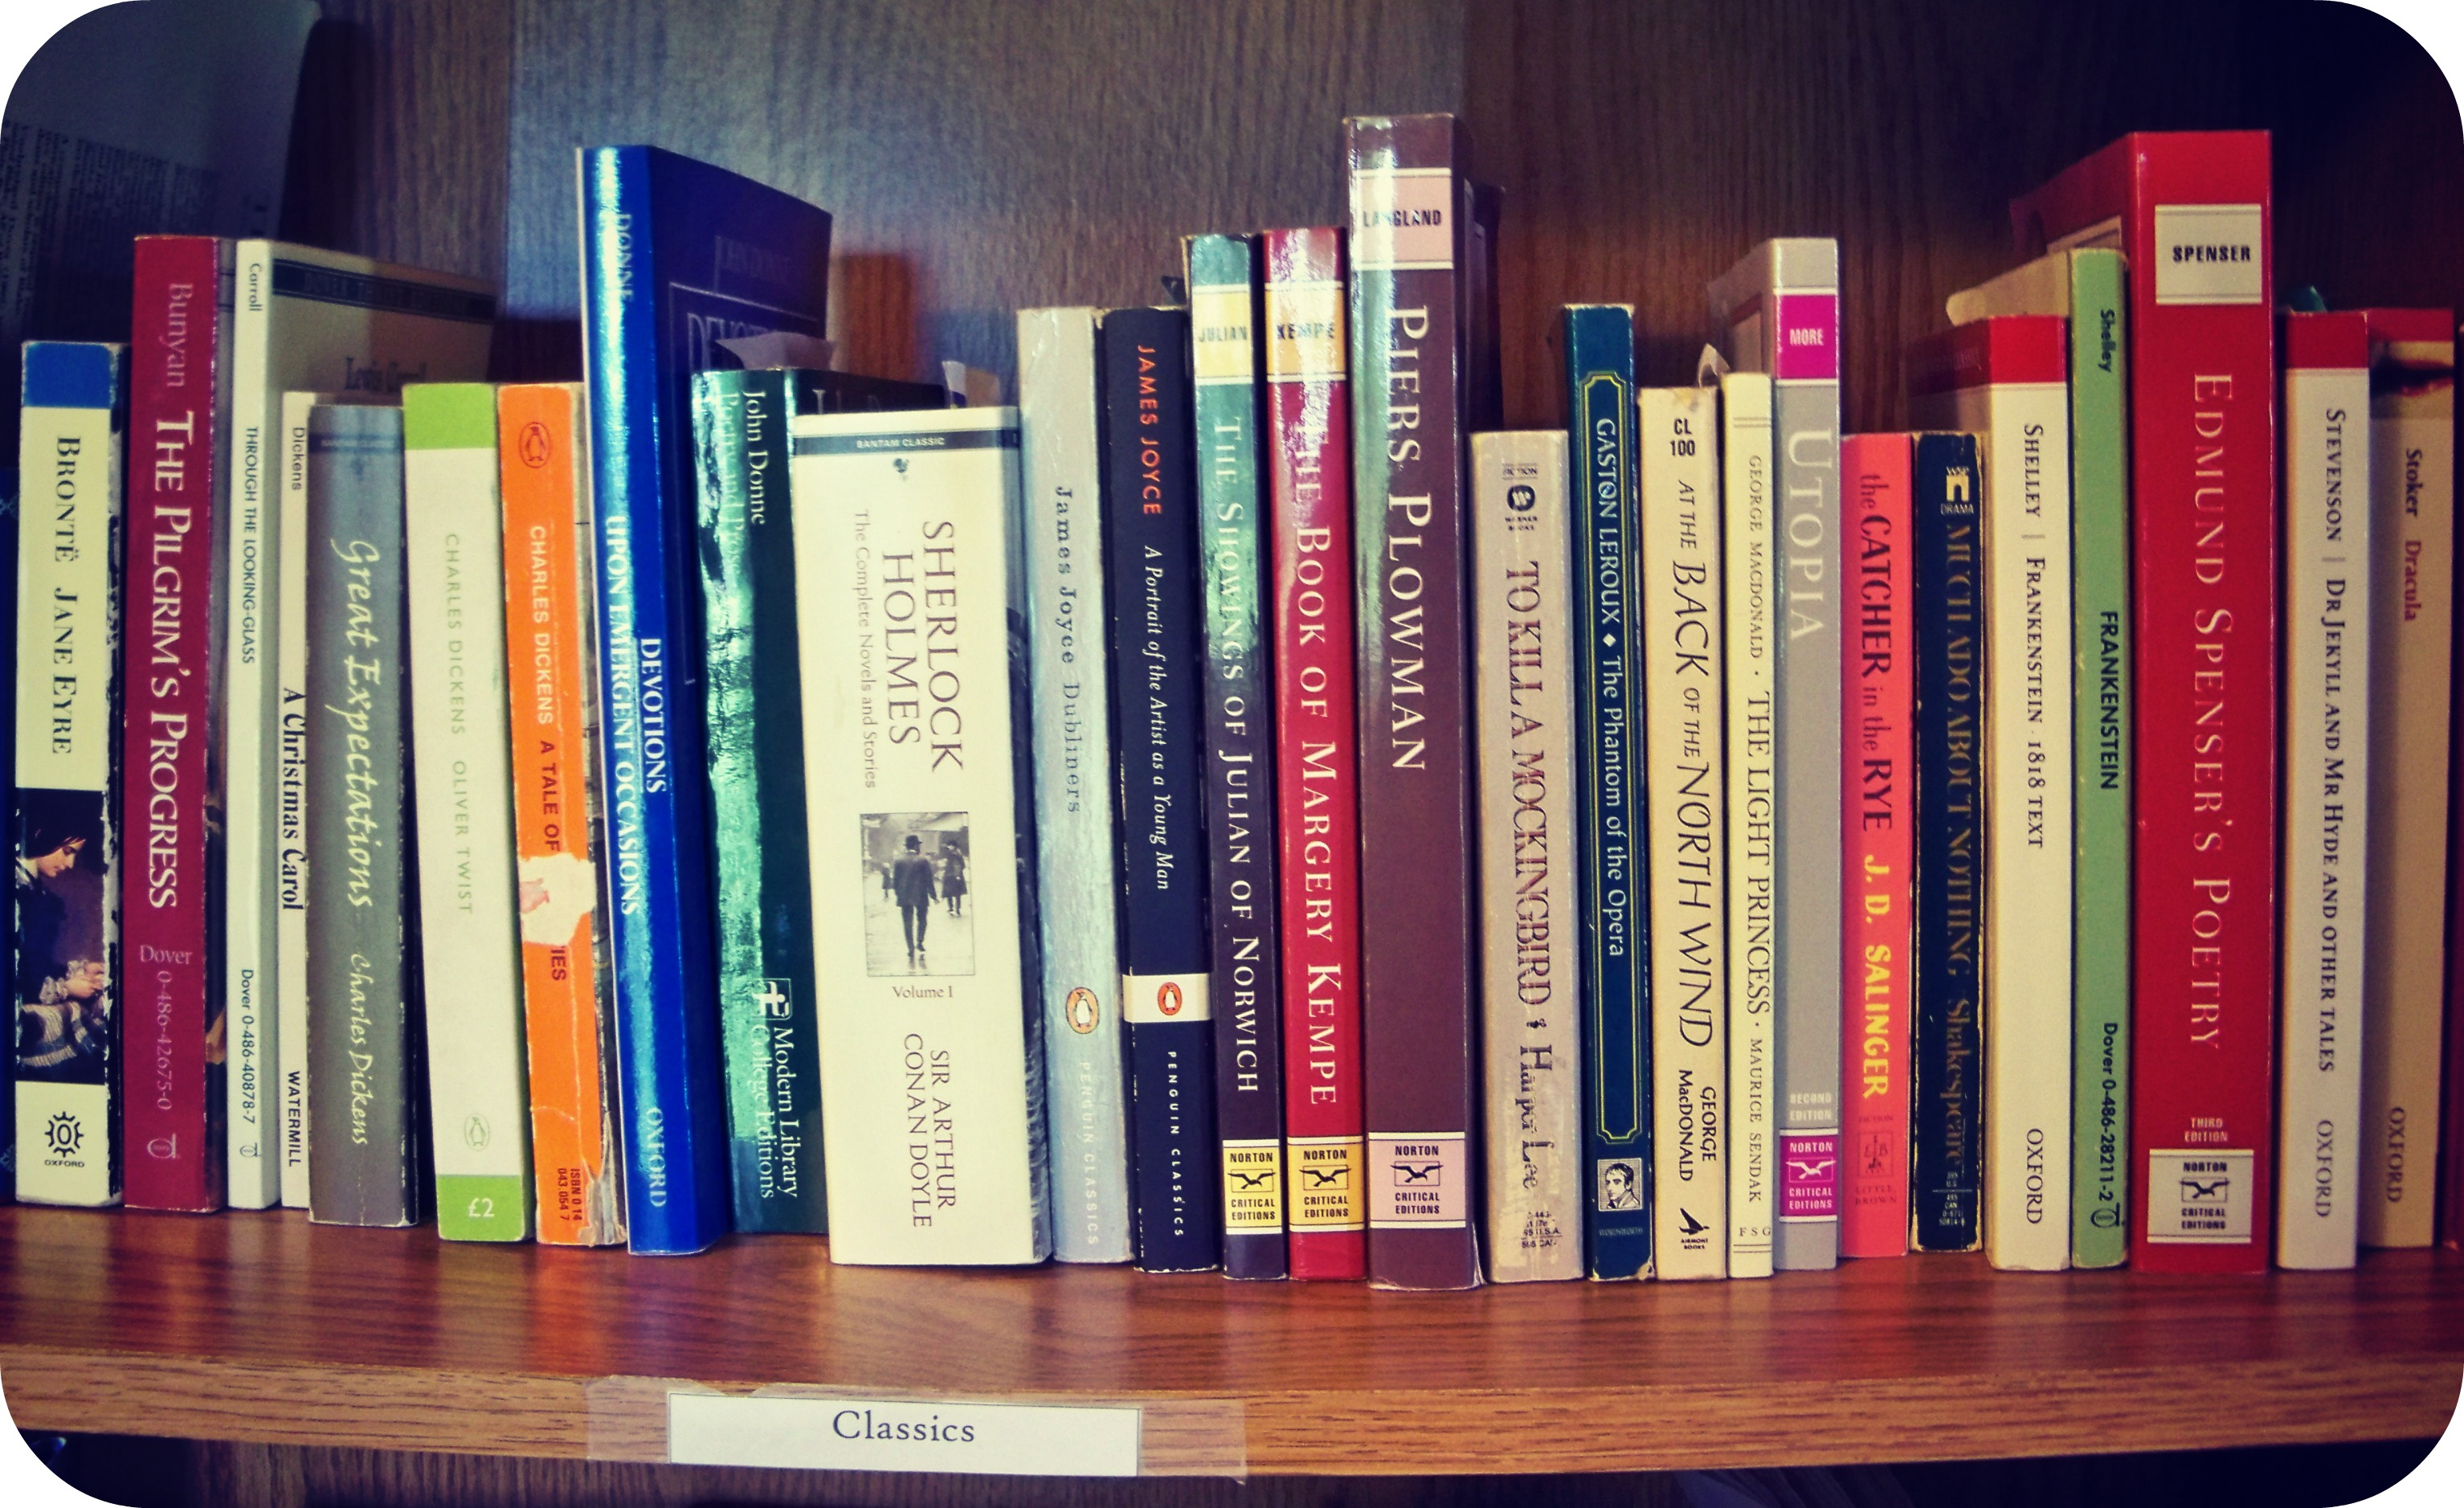 & An Experiment in Minimalism: Tackling the Bookshelf